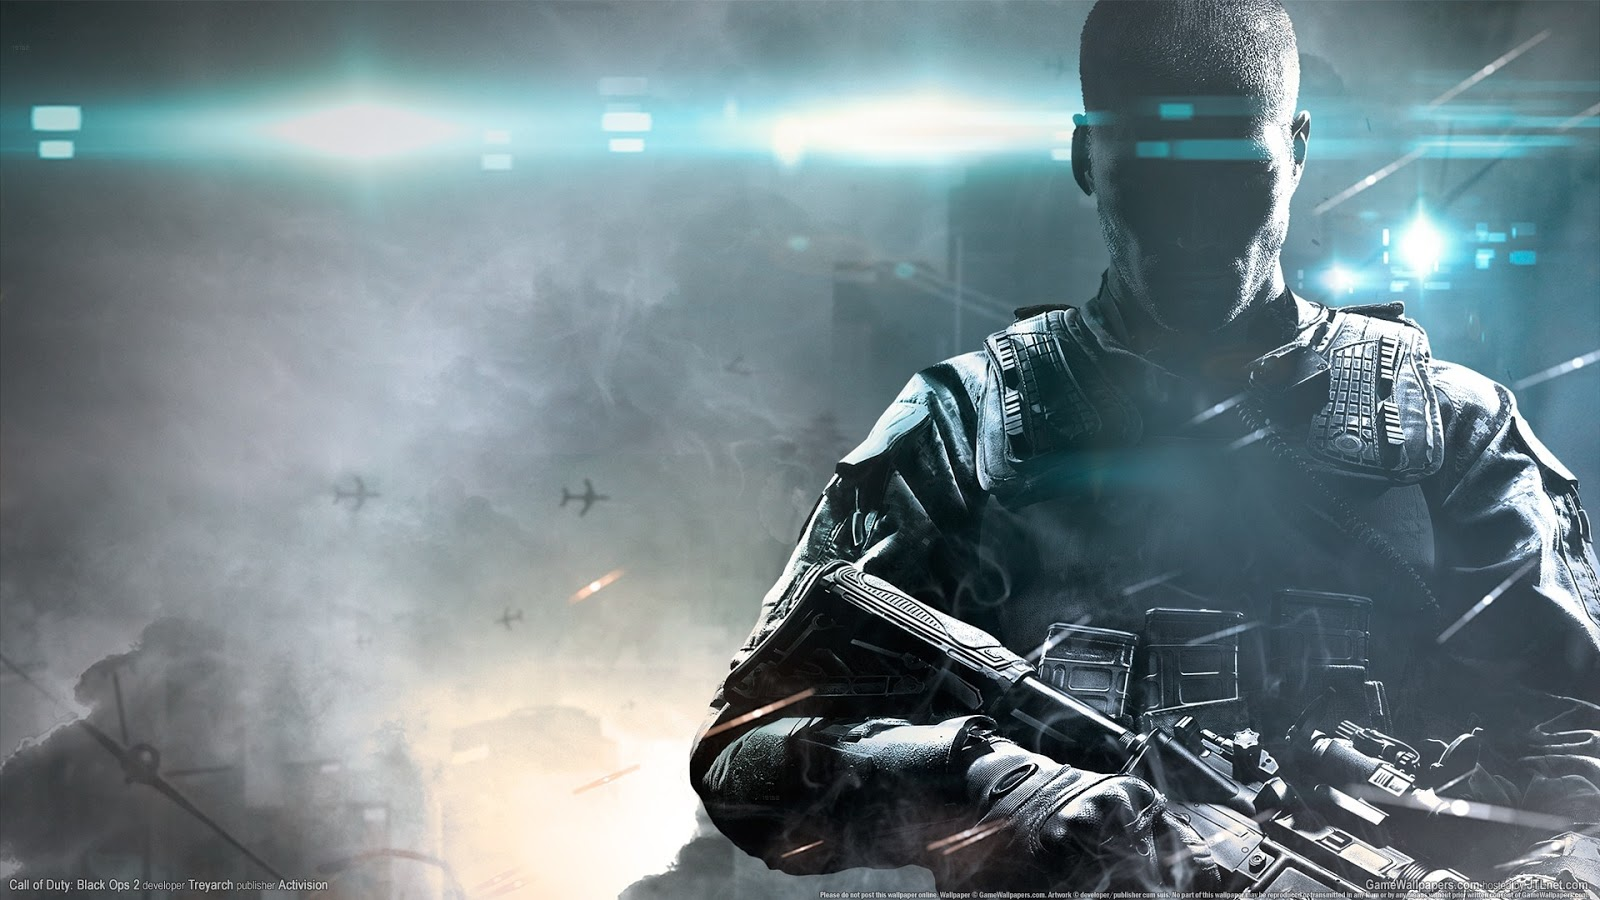 Free download Call Of Duty Black Ops 2 Ps3 Wallpaper Viewing Gallery